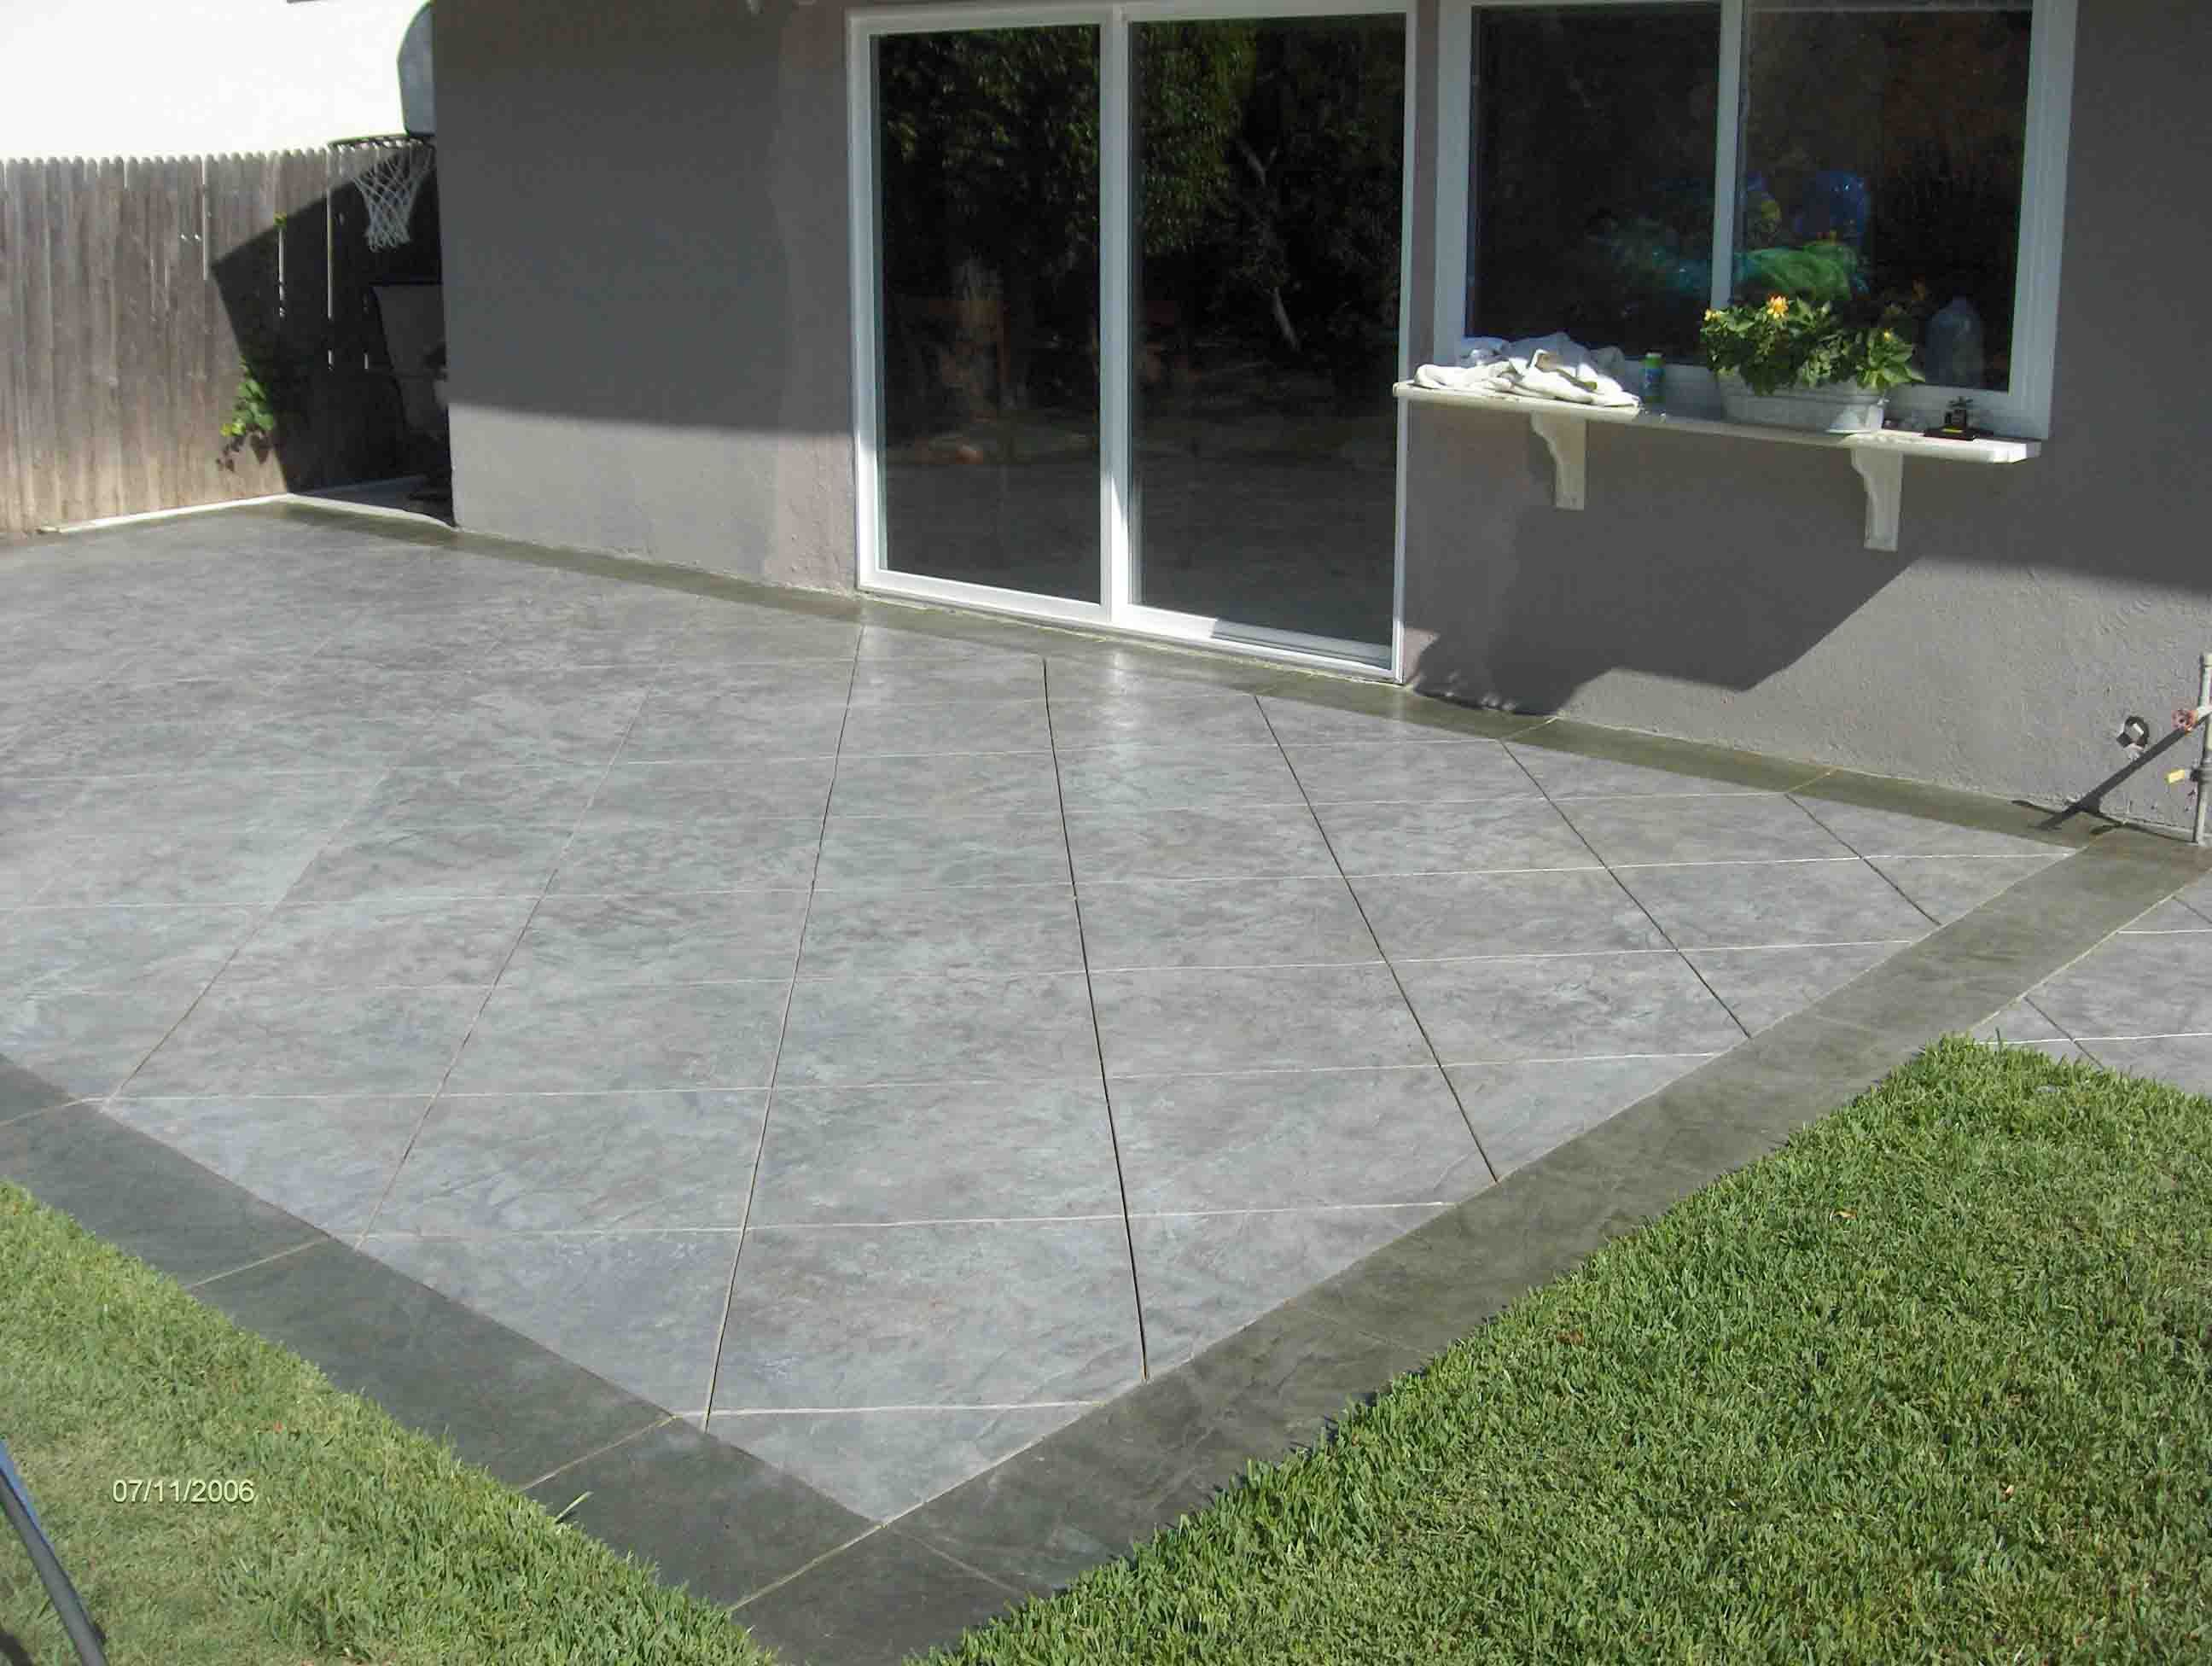 Concrete Patio Design Ideas home decor captivating concrete patio ideas pictures design ideas 6indycom Patio Designs Concrete Concrete Patios Des Plaines Decorative Patio 3d